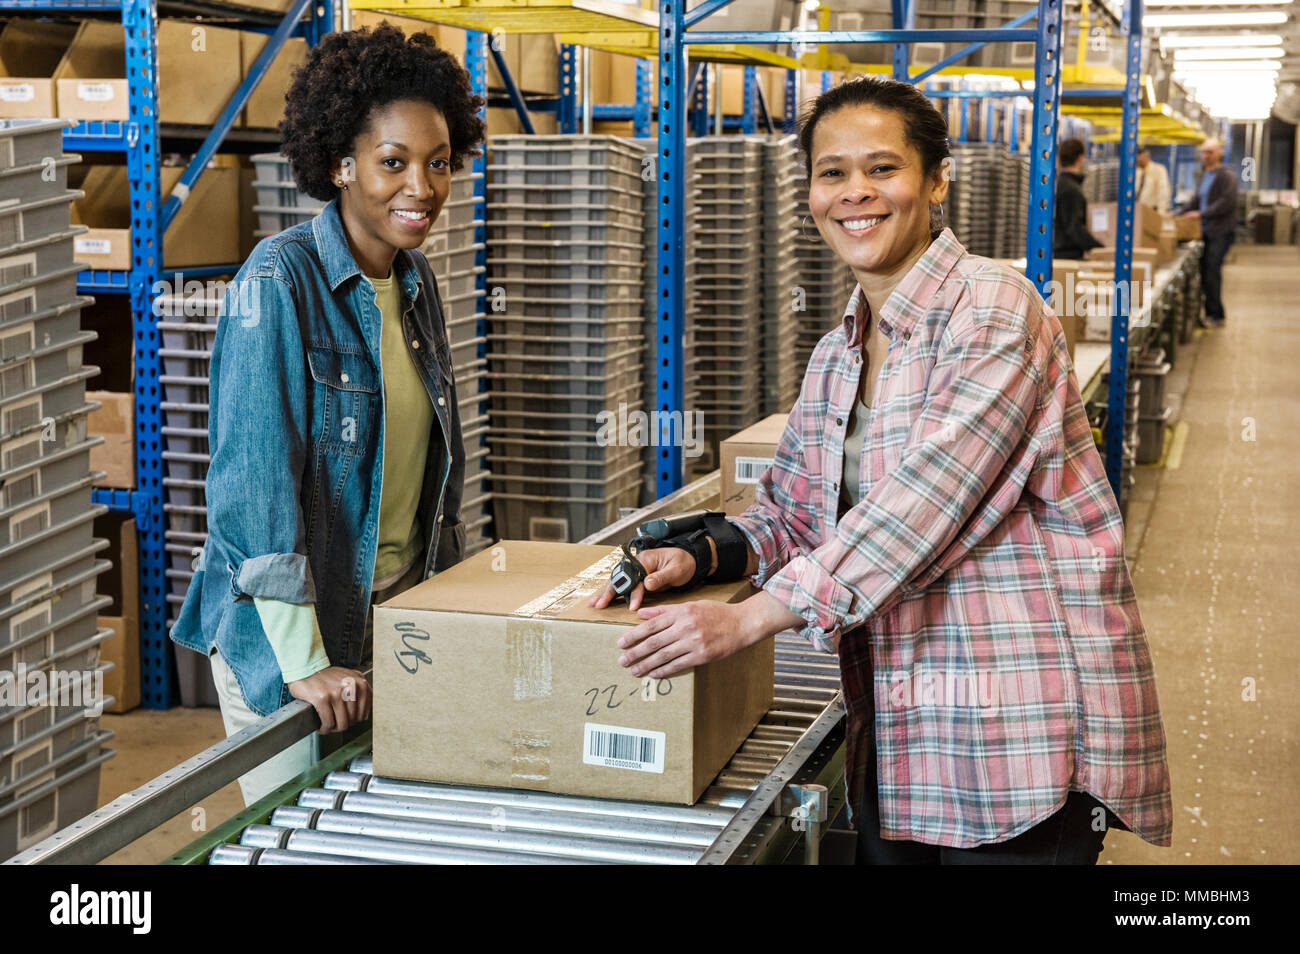 Team portrait of multi-ethnic female warehouse workers working next to a motorzied feed conveyor in a large distribution warehouse. - Stock Image